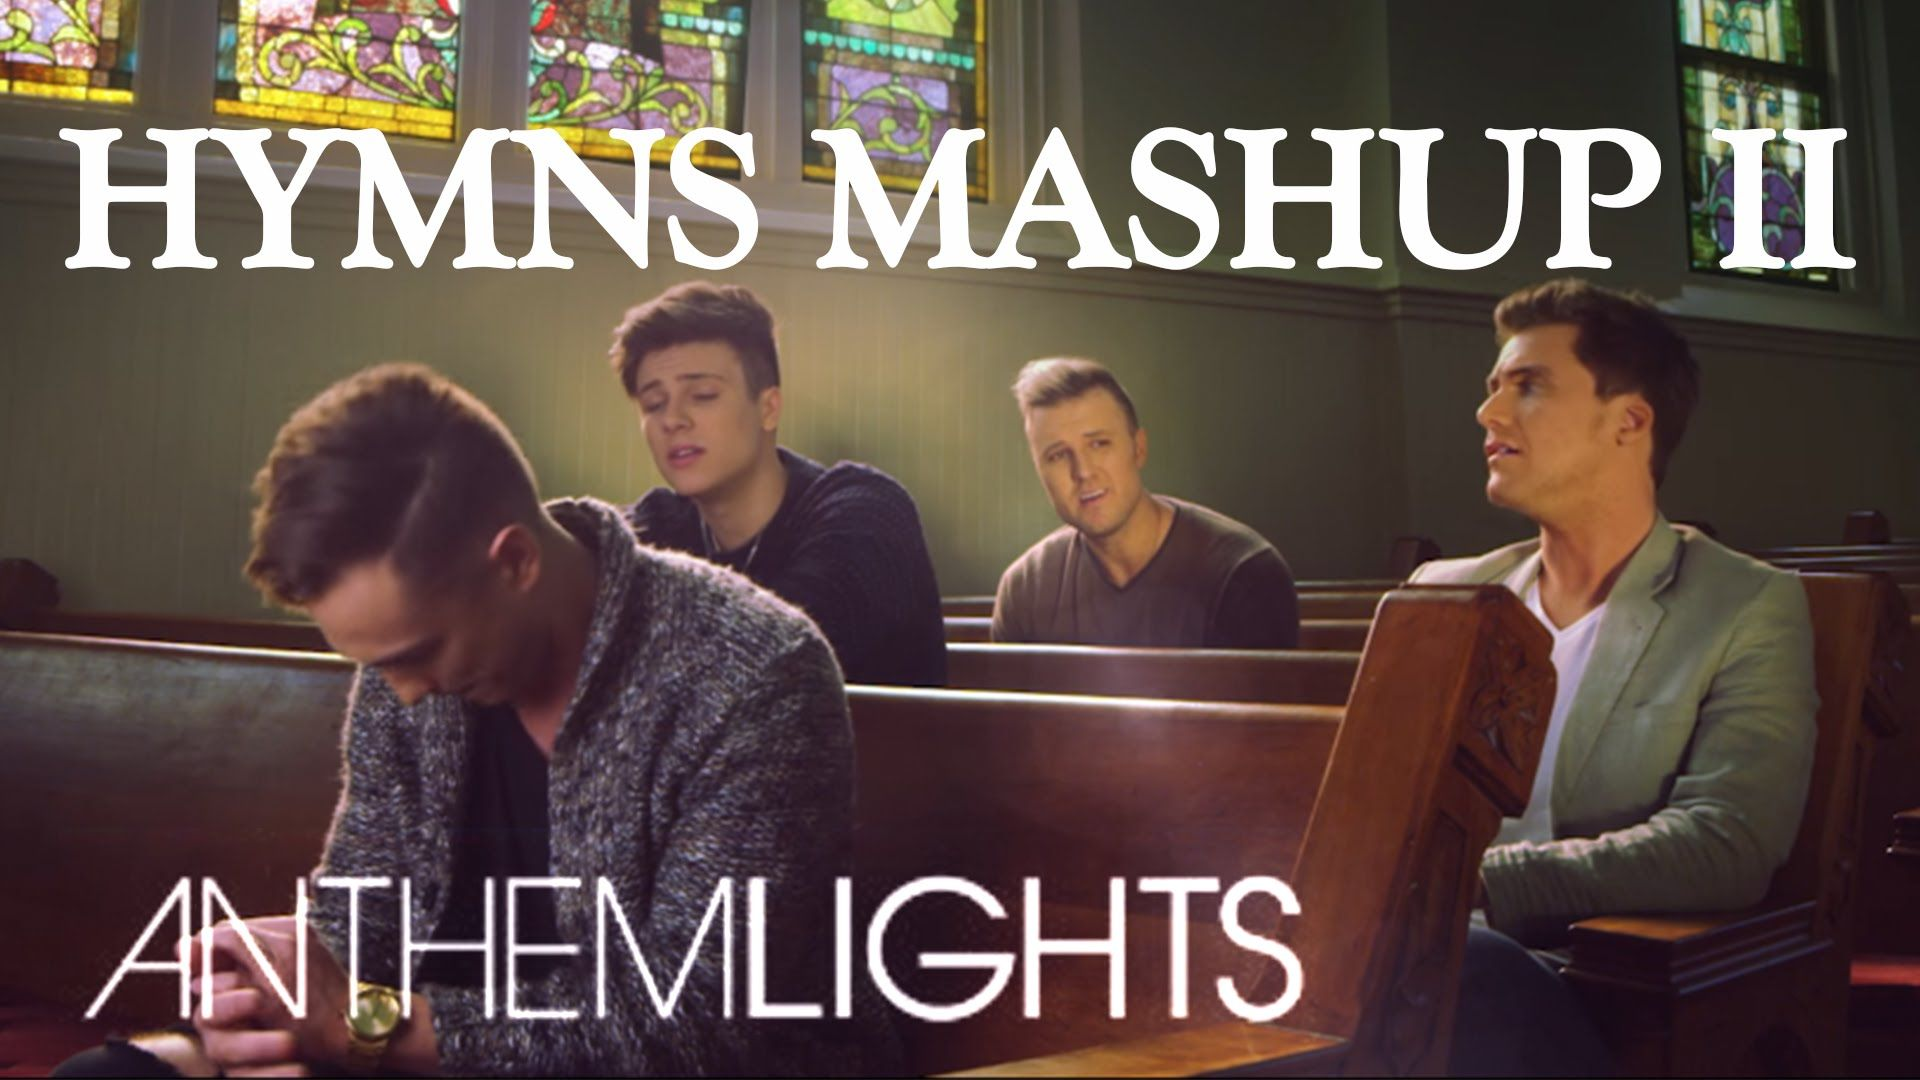 Hymns Mashup Pt  II | Anthem Lights - Come Thou Fount, Be